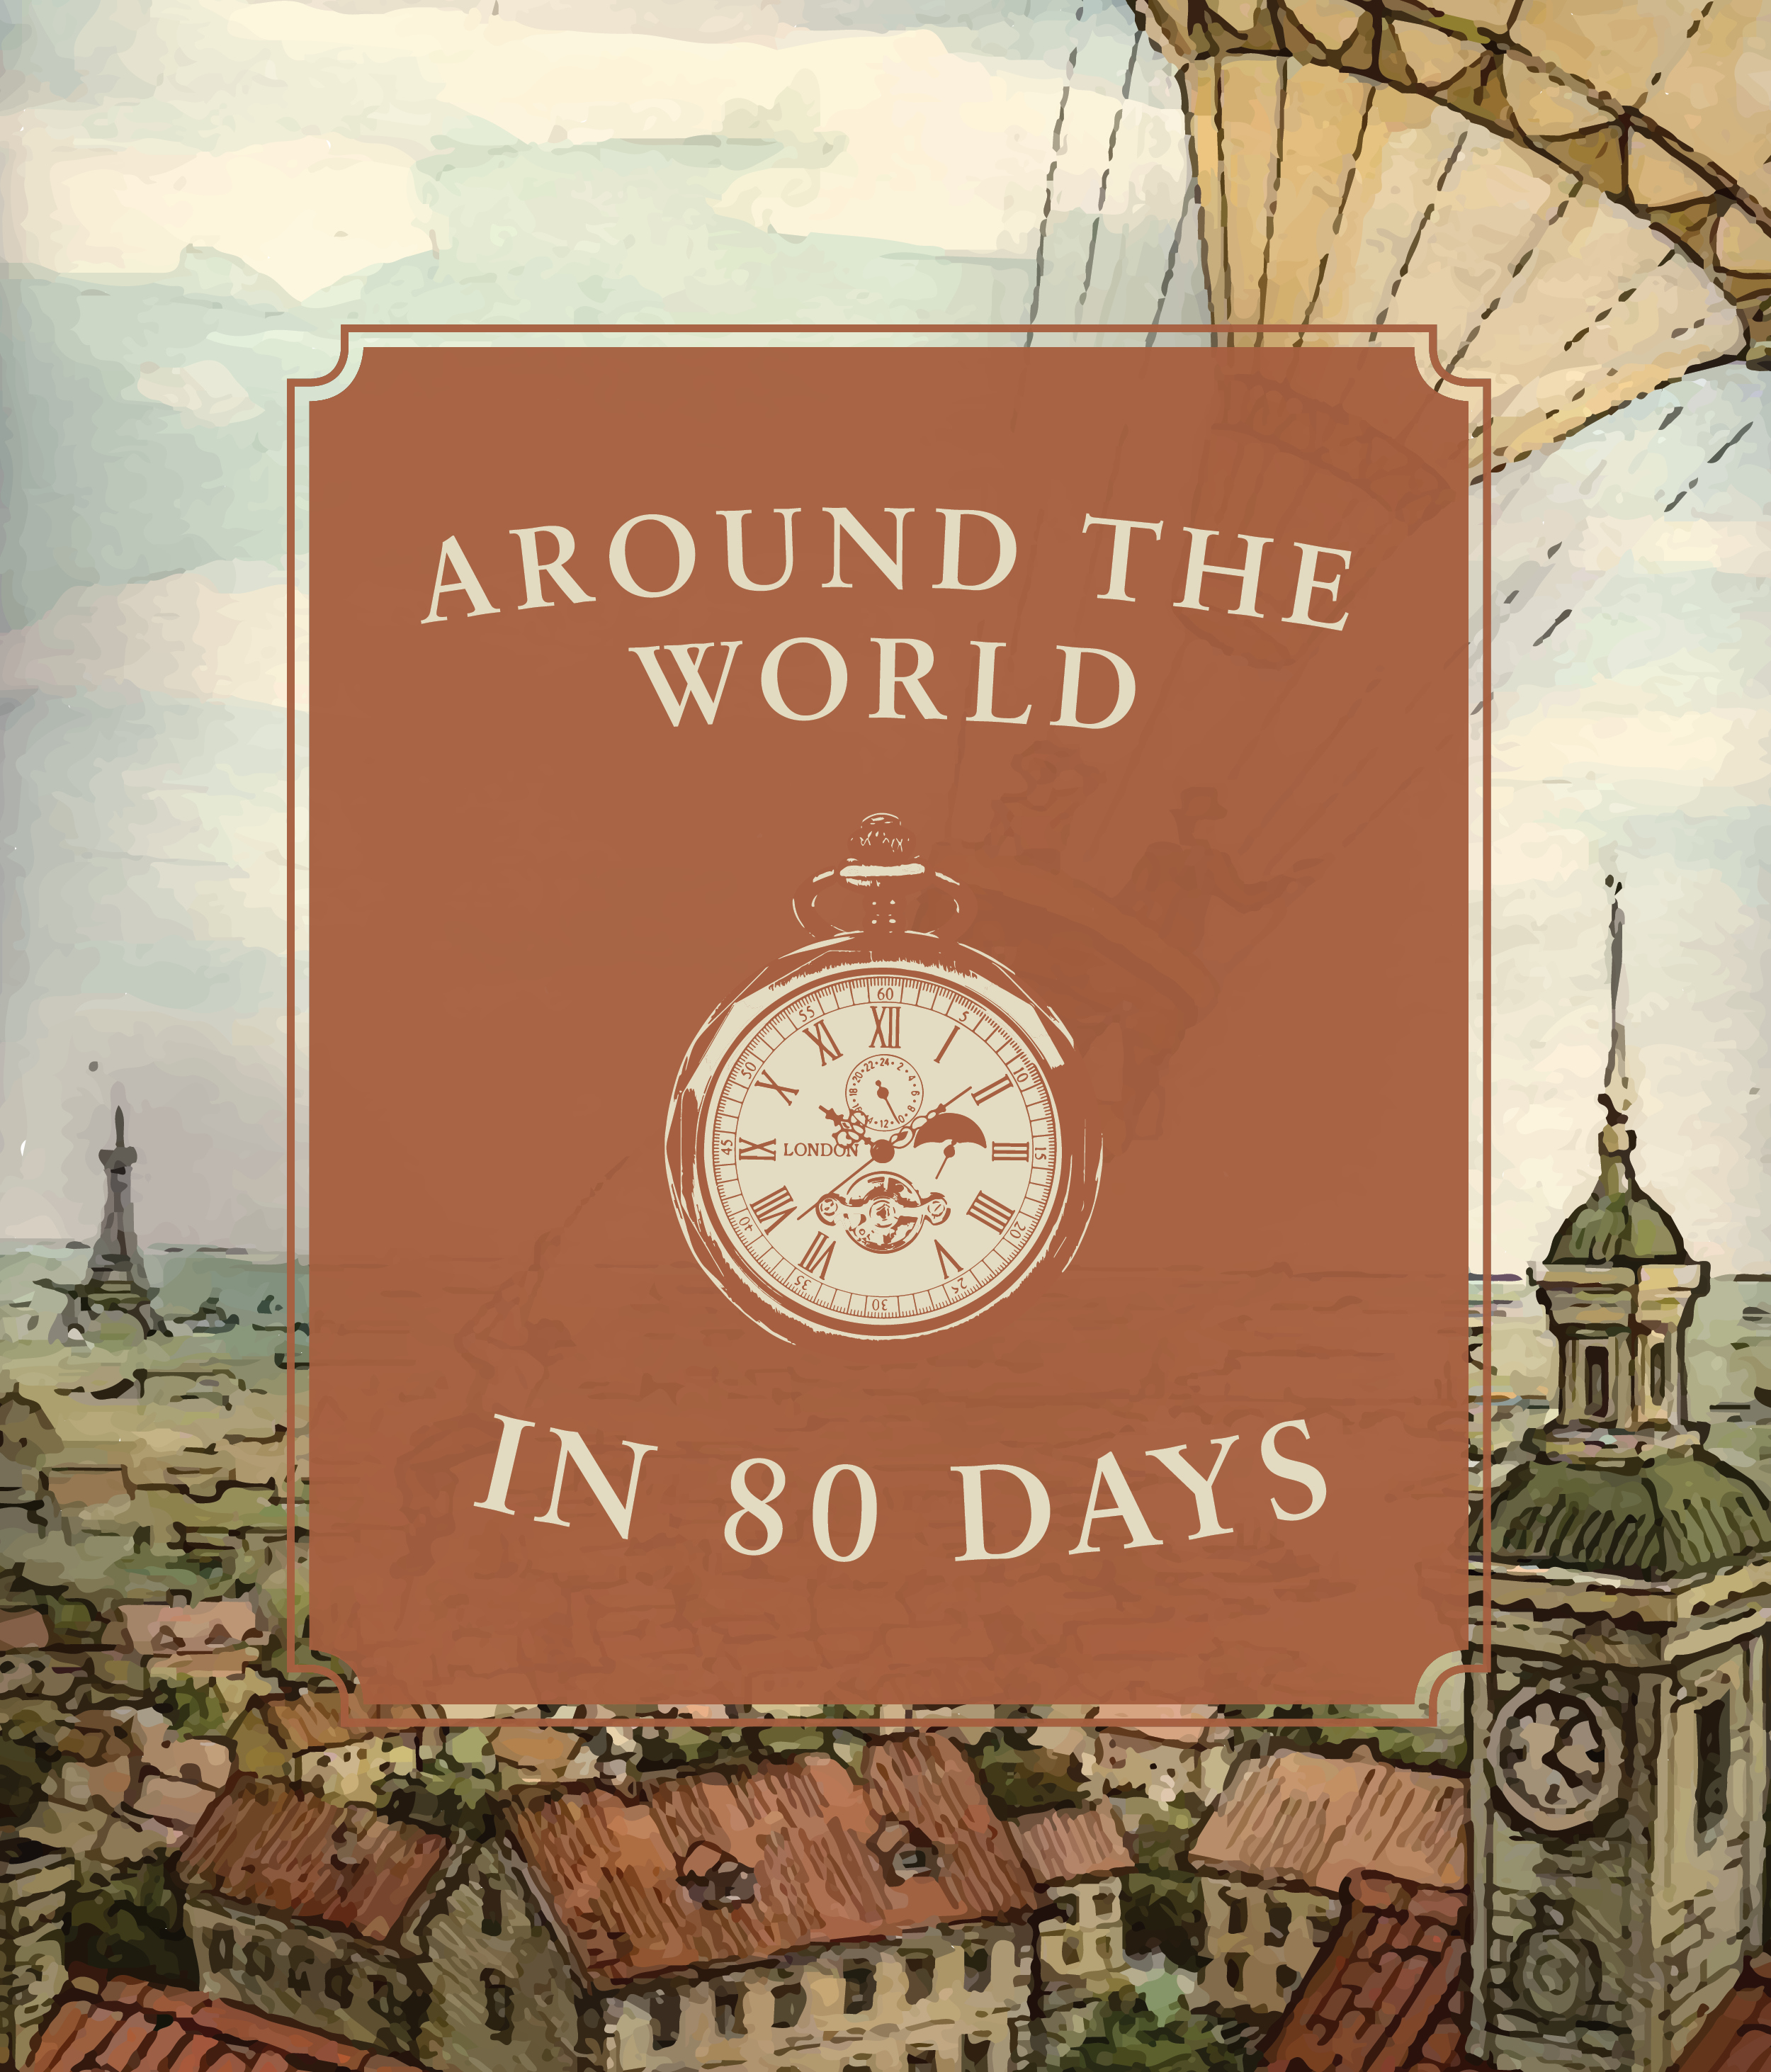 around the world in 80 days character sketch